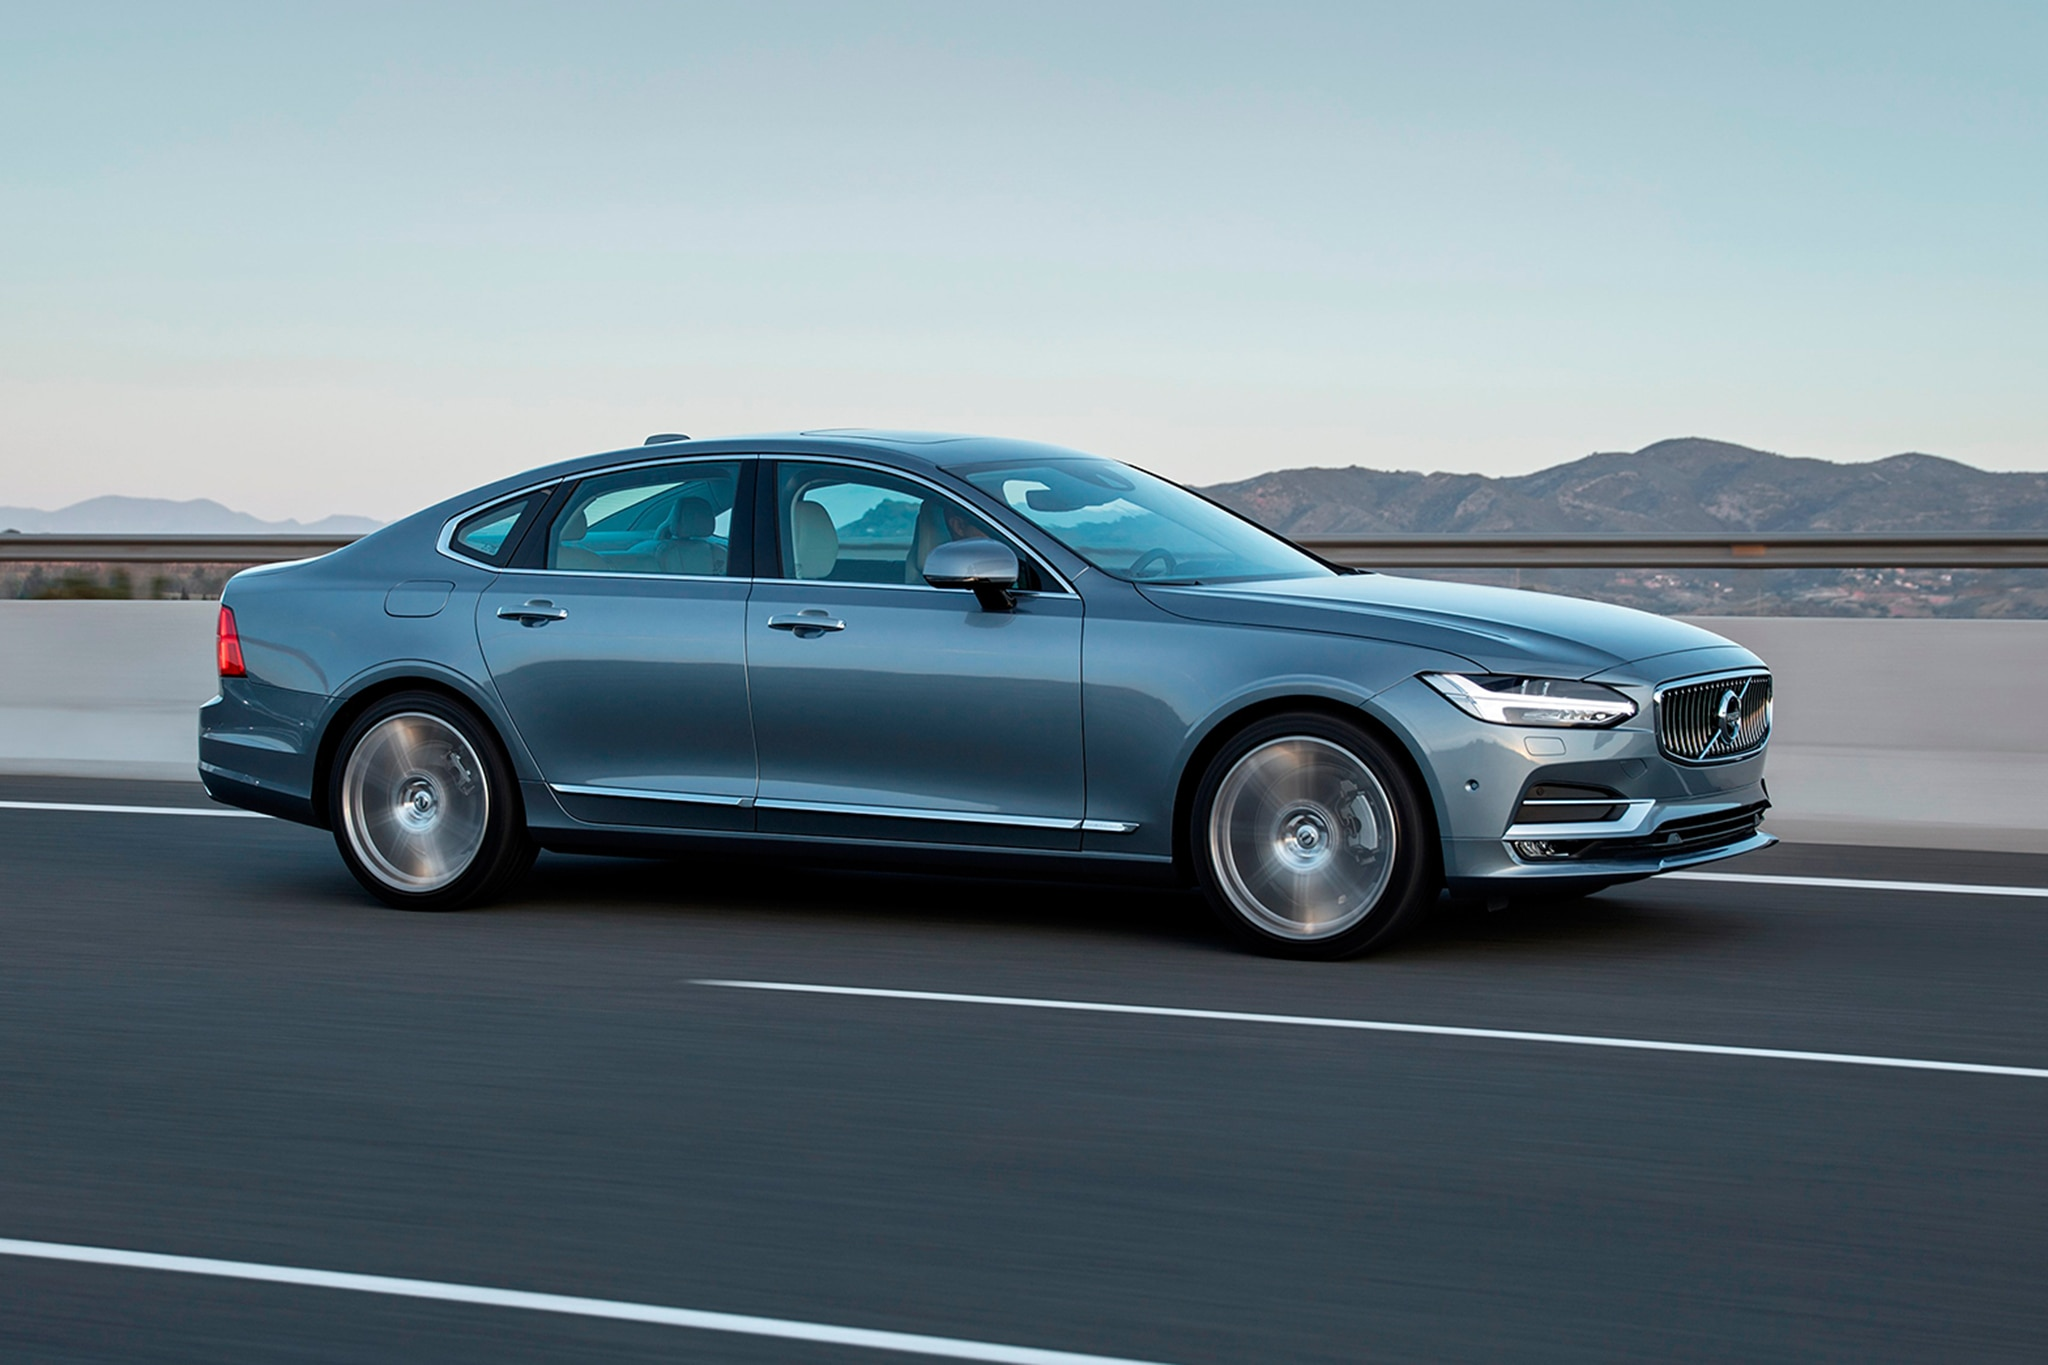 2017 Volvo S90 Side In Motion 1